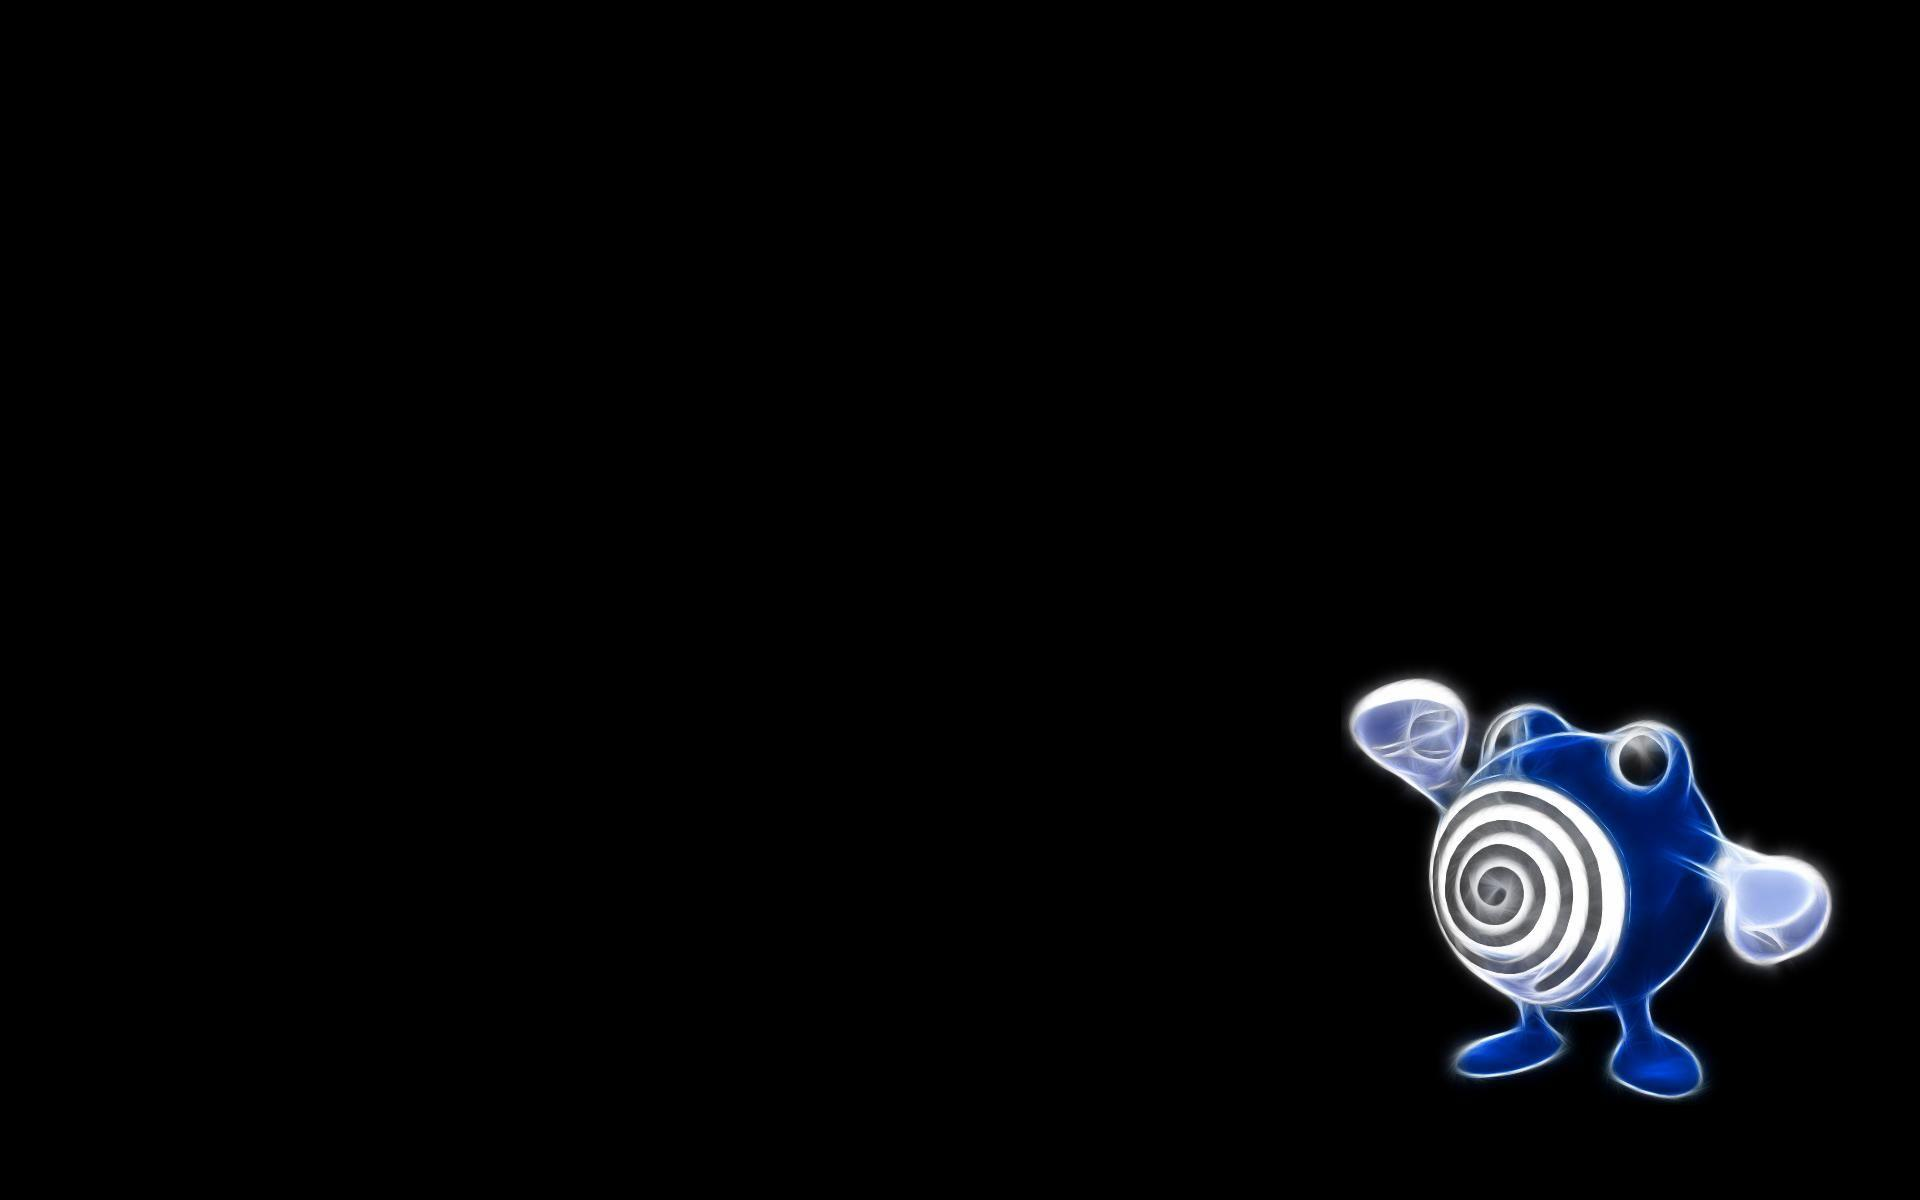 Poliwhirl, Minimalism, Black Background wallpaper | anime ...